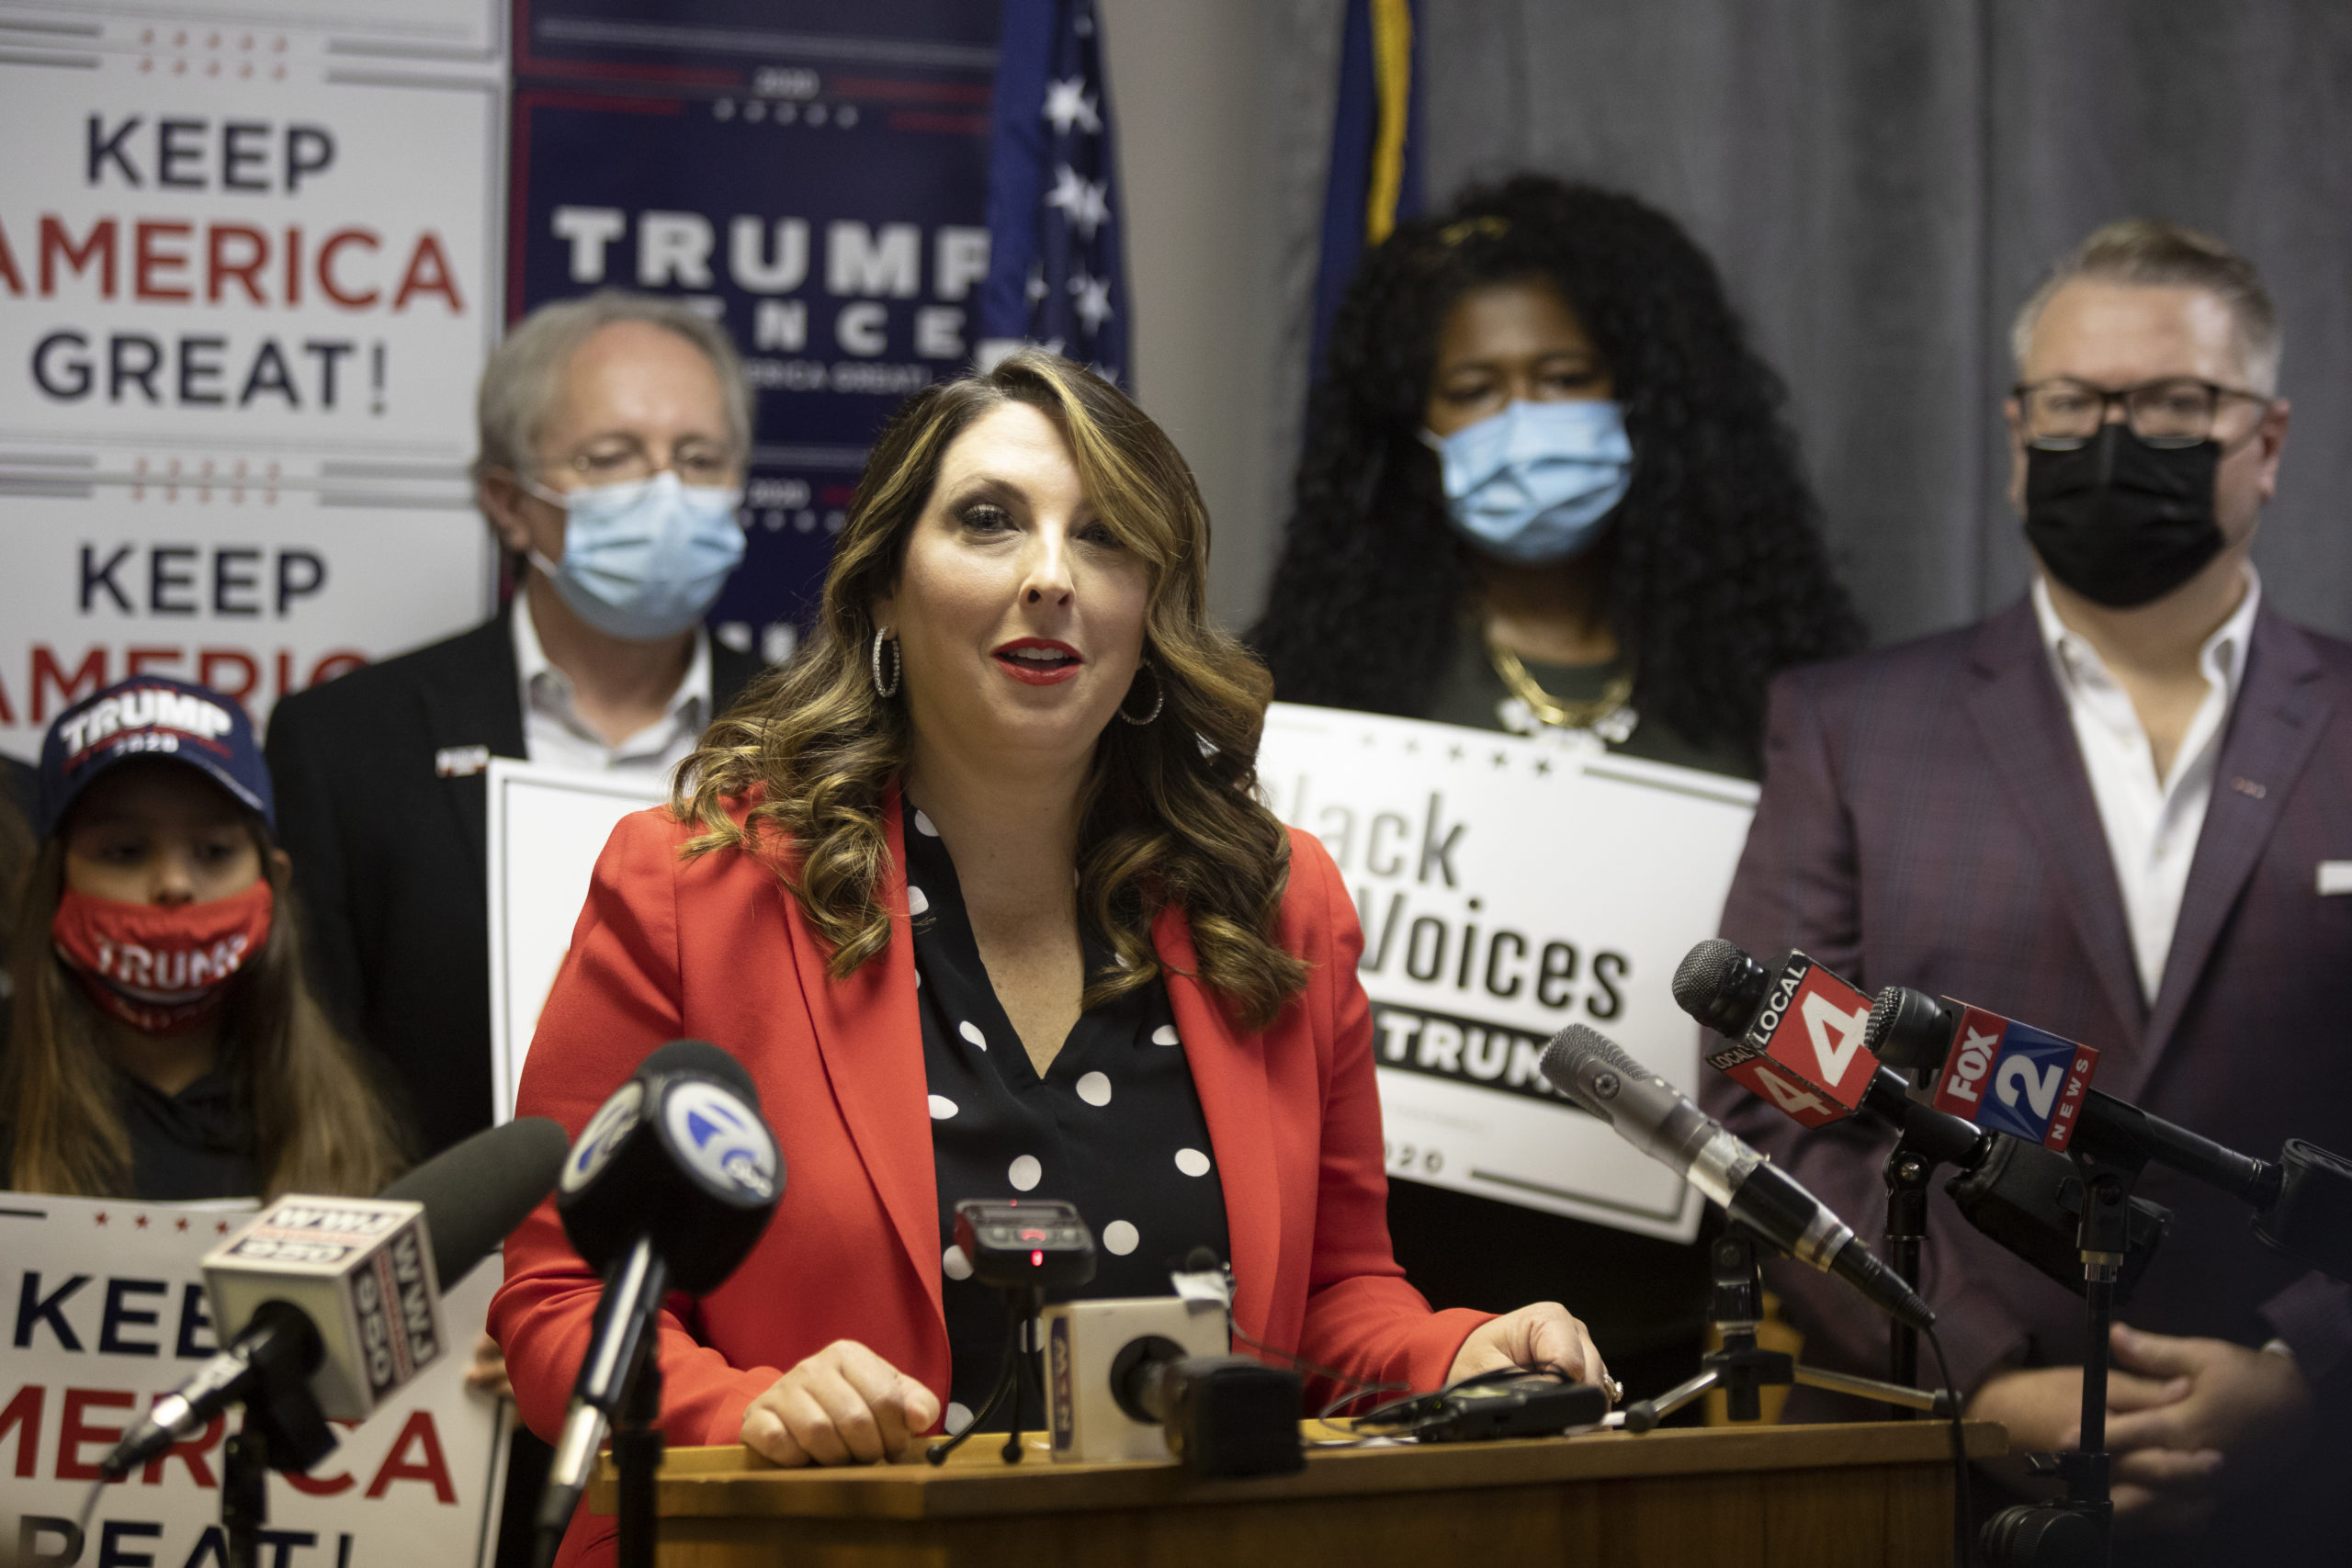 Republican National Committee Chairwoman Ronna McDaniel speaks during the Trump Victory press conference on November 6, 2020 in Bloomfield Hills, Michigan. (Elaine Cromie/Getty Images)